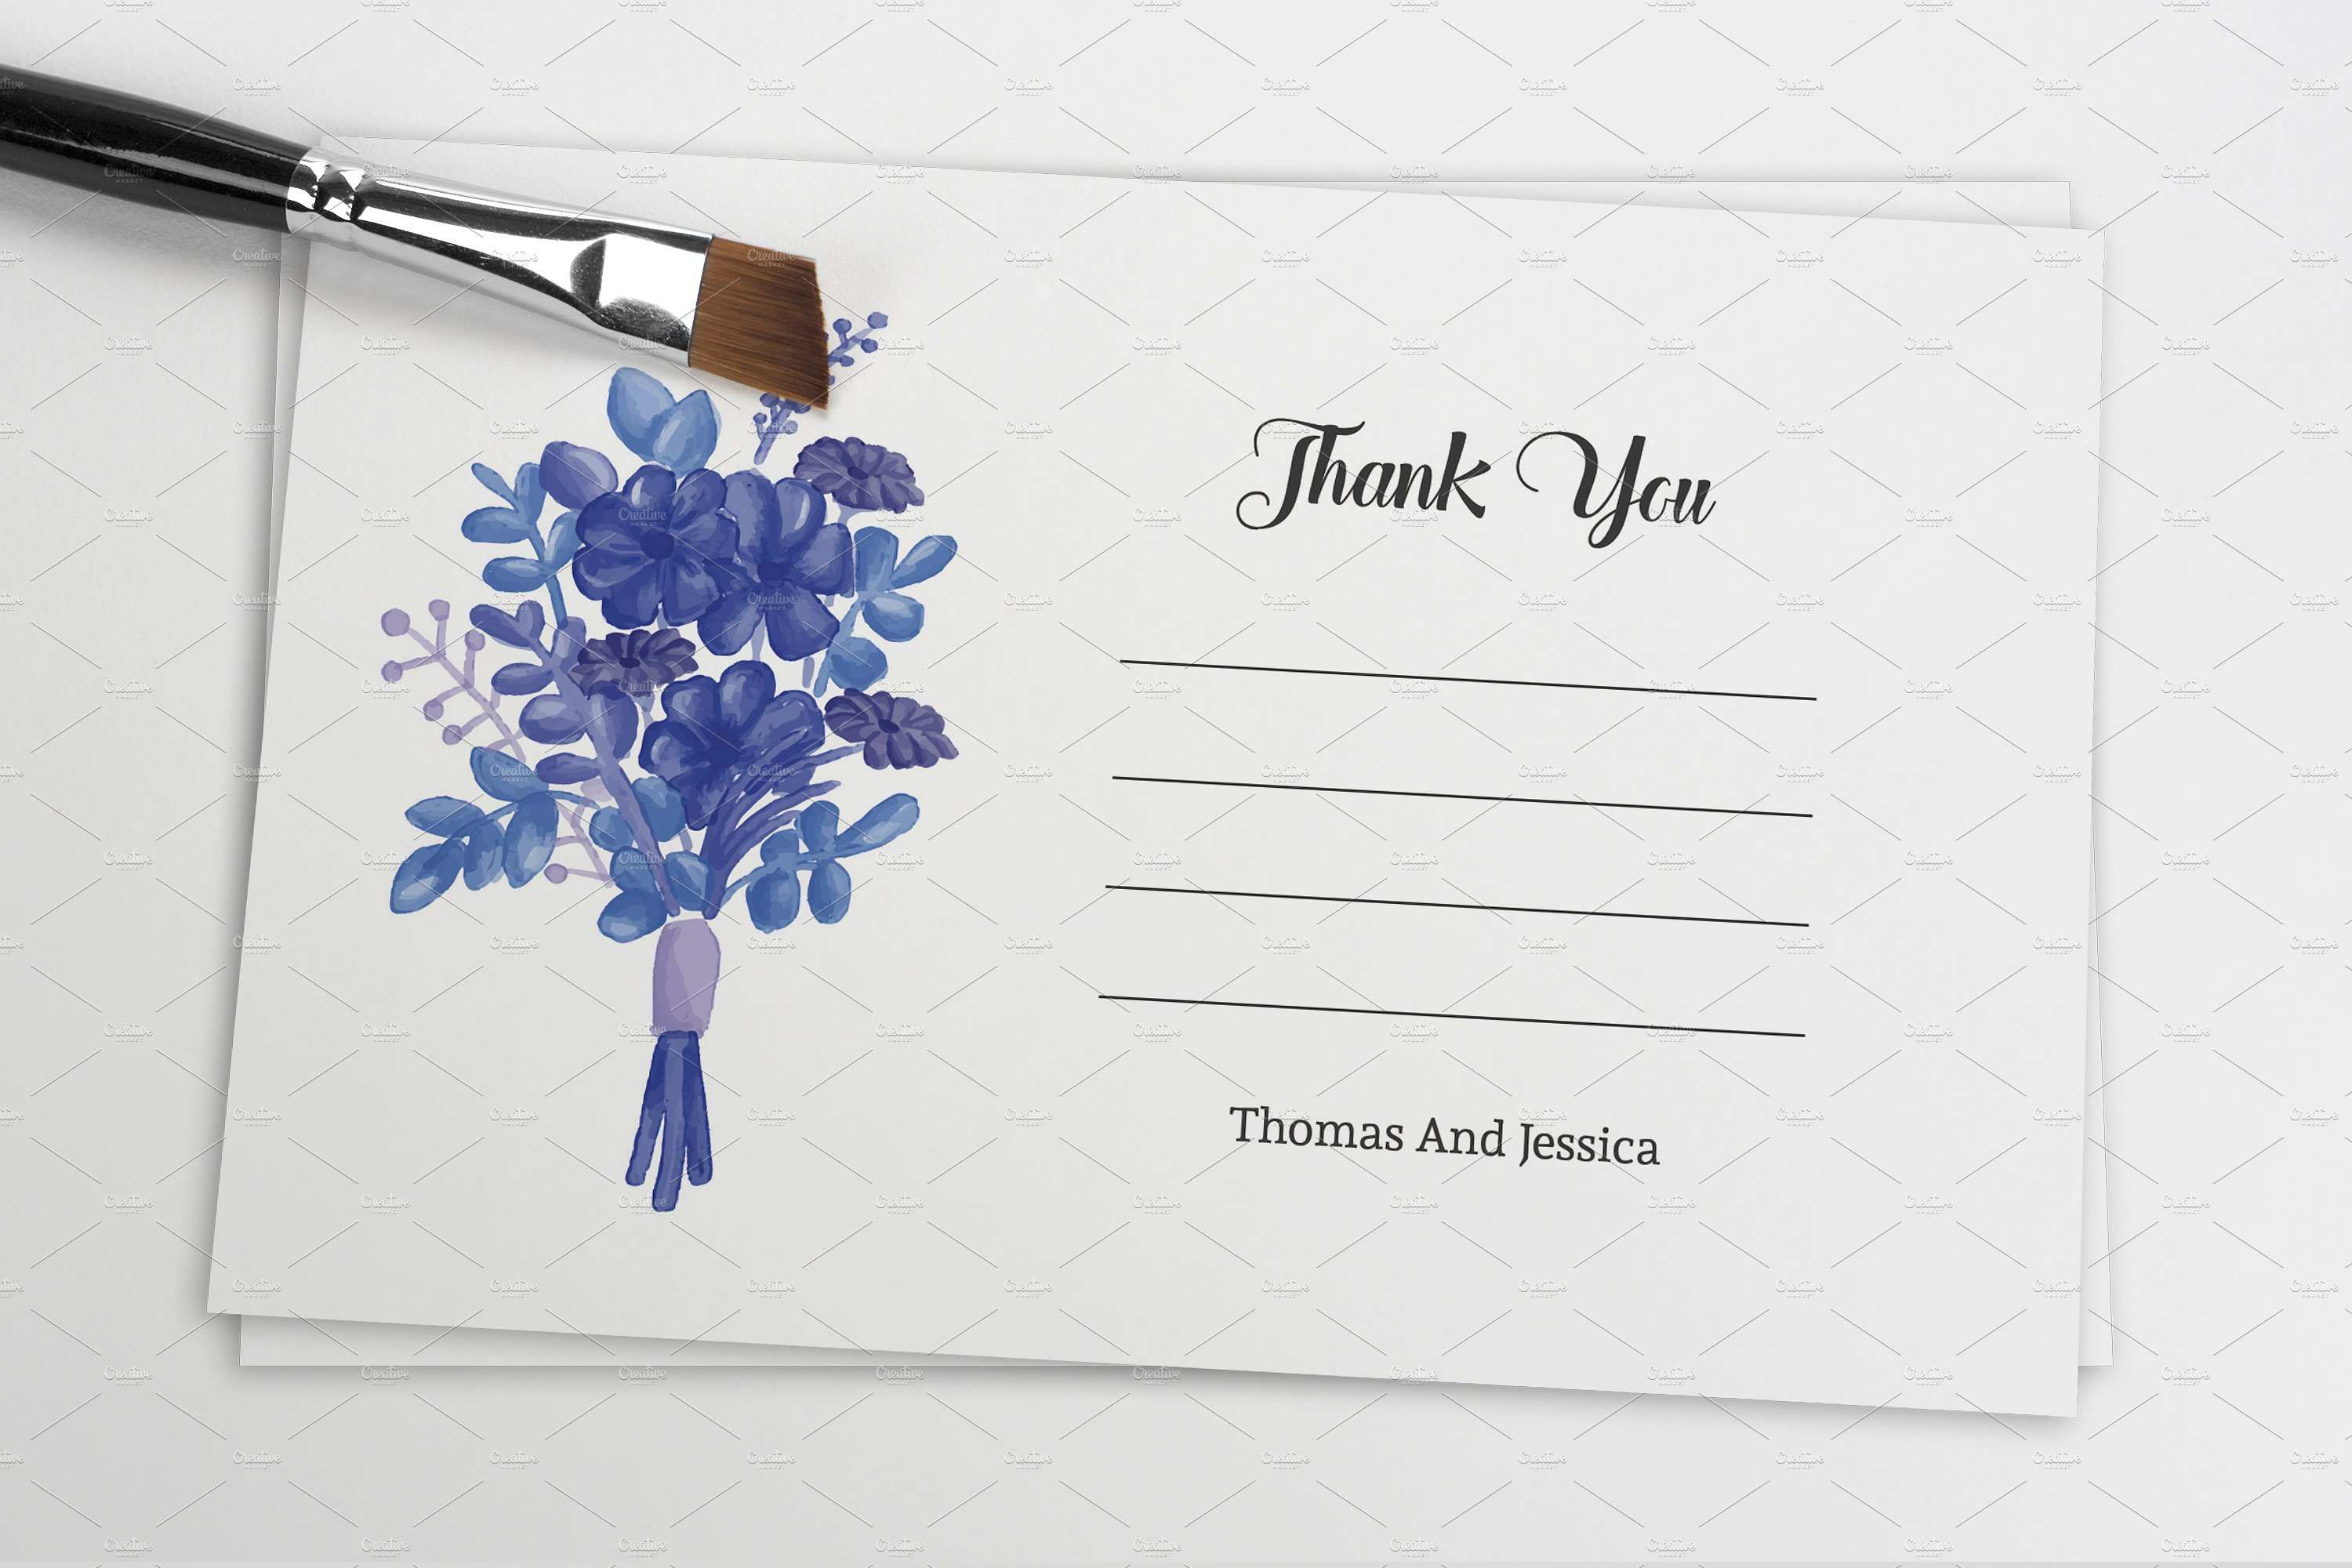 15 Report Word Thank You Card Templates PSD File by Word Thank You Card Templates